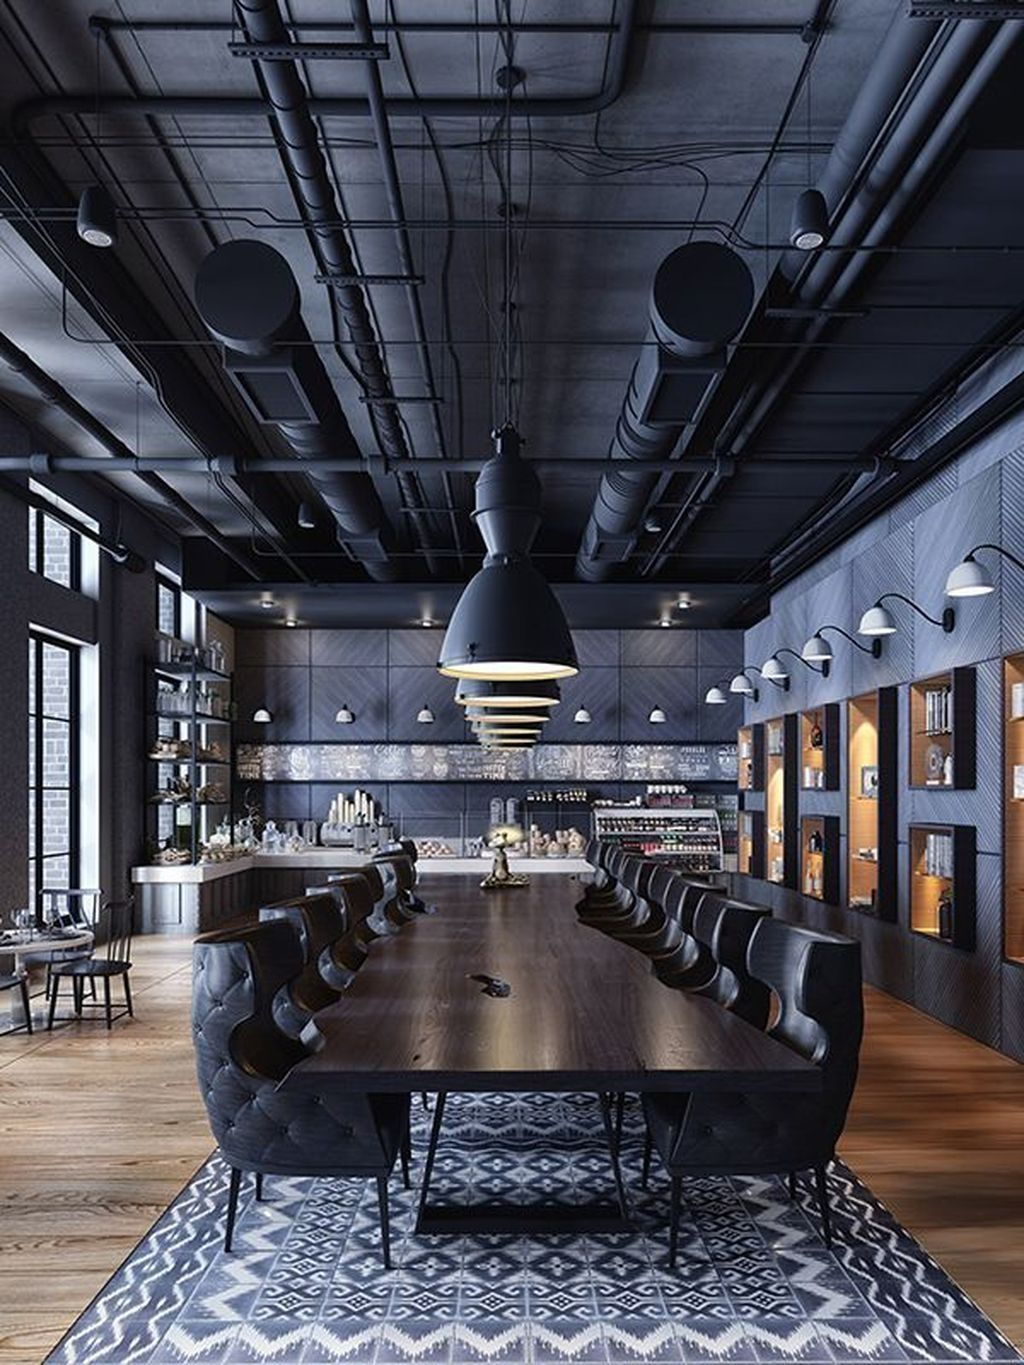 Bubble An Innovative Digital Agency Based In Prague Czech Republic Recently Expanded Its Industrial Office Design Modern Office Design Creative Office Space